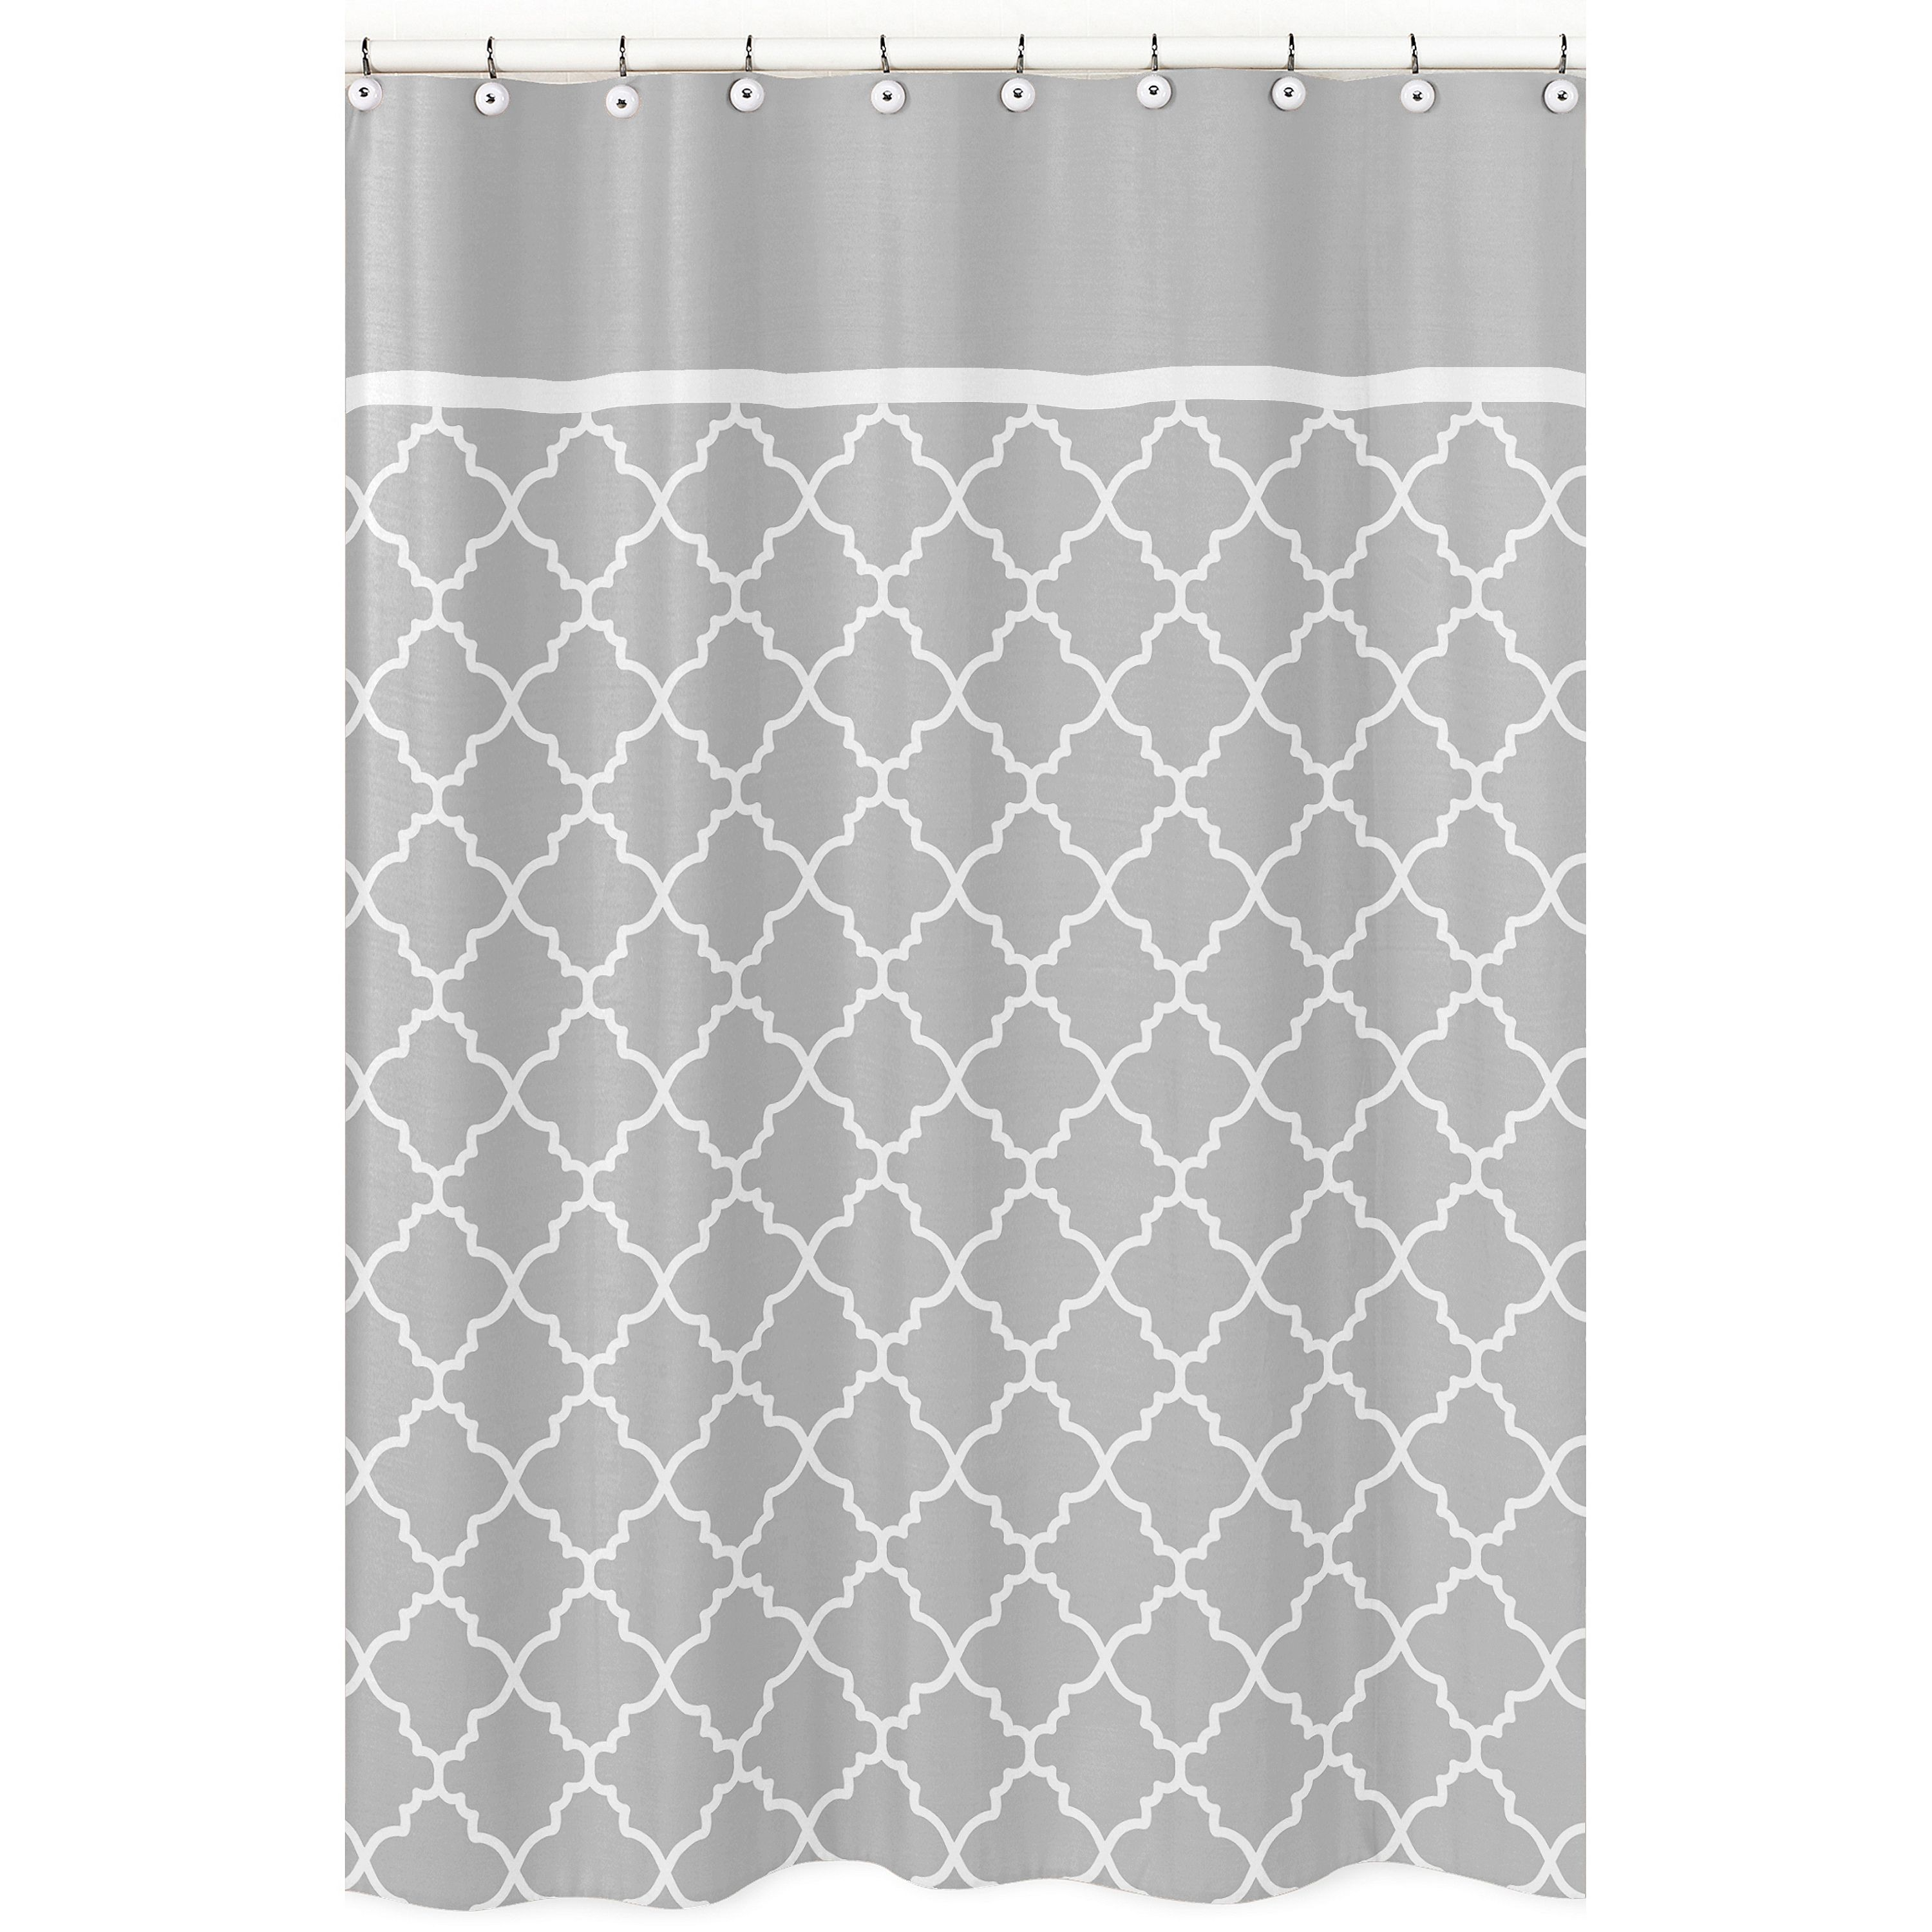 Sweet Jojo Designs Gray And White Trellis Collection Shower